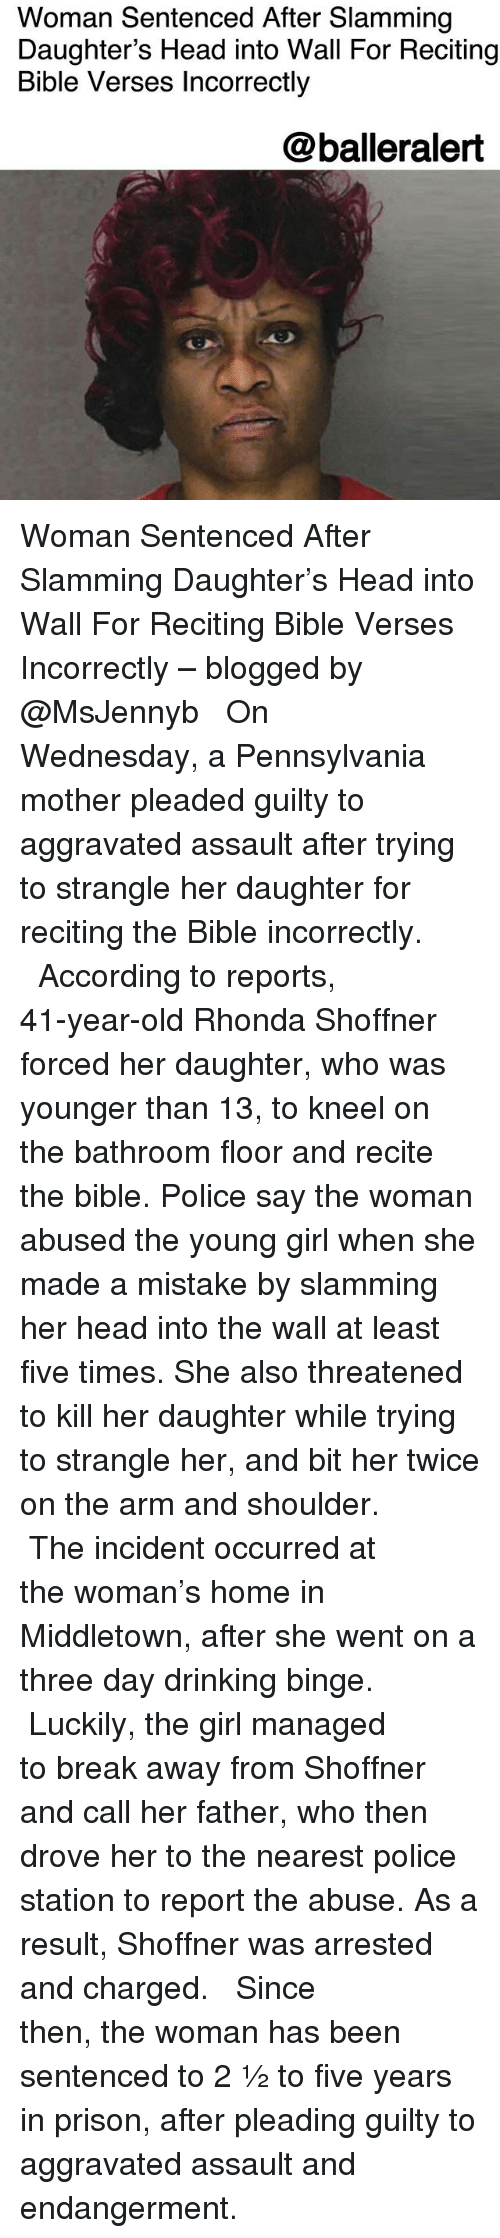 Drinking, Head, and Memes: Woman Sentenced After Slamming  Daughter's Head into Wall For Reciting  Bible Verses Incorrectly  @balleralert Woman Sentenced After Slamming Daughter's Head into Wall For Reciting Bible Verses Incorrectly – blogged by @MsJennyb ⠀⠀⠀⠀⠀⠀⠀ ⠀⠀⠀⠀⠀⠀⠀ On Wednesday, a Pennsylvania mother pleaded guilty to aggravated assault after trying to strangle her daughter for reciting the Bible incorrectly. ⠀⠀⠀⠀⠀⠀⠀ ⠀⠀⠀⠀⠀⠀⠀ According to reports, 41-year-old Rhonda Shoffner forced her daughter, who was younger than 13, to kneel on the bathroom floor and recite the bible. Police say the woman abused the young girl when she made a mistake by slamming her head into the wall at least five times. She also threatened to kill her daughter while trying to strangle her, and bit her twice on the arm and shoulder. ⠀⠀⠀⠀⠀⠀⠀ ⠀⠀⠀⠀⠀⠀⠀ The incident occurred at the woman's home in Middletown, after she went on a three day drinking binge. ⠀⠀⠀⠀⠀⠀⠀ ⠀⠀⠀⠀⠀⠀⠀ Luckily, the girl managed to break away from Shoffner and call her father, who then drove her to the nearest police station to report the abuse. As a result, Shoffner was arrested and charged. ⠀⠀⠀⠀⠀⠀⠀ ⠀⠀⠀⠀⠀⠀⠀ Since then, the woman has been sentenced to 2 ½ to five years in prison, after pleading guilty to aggravated assault and endangerment.